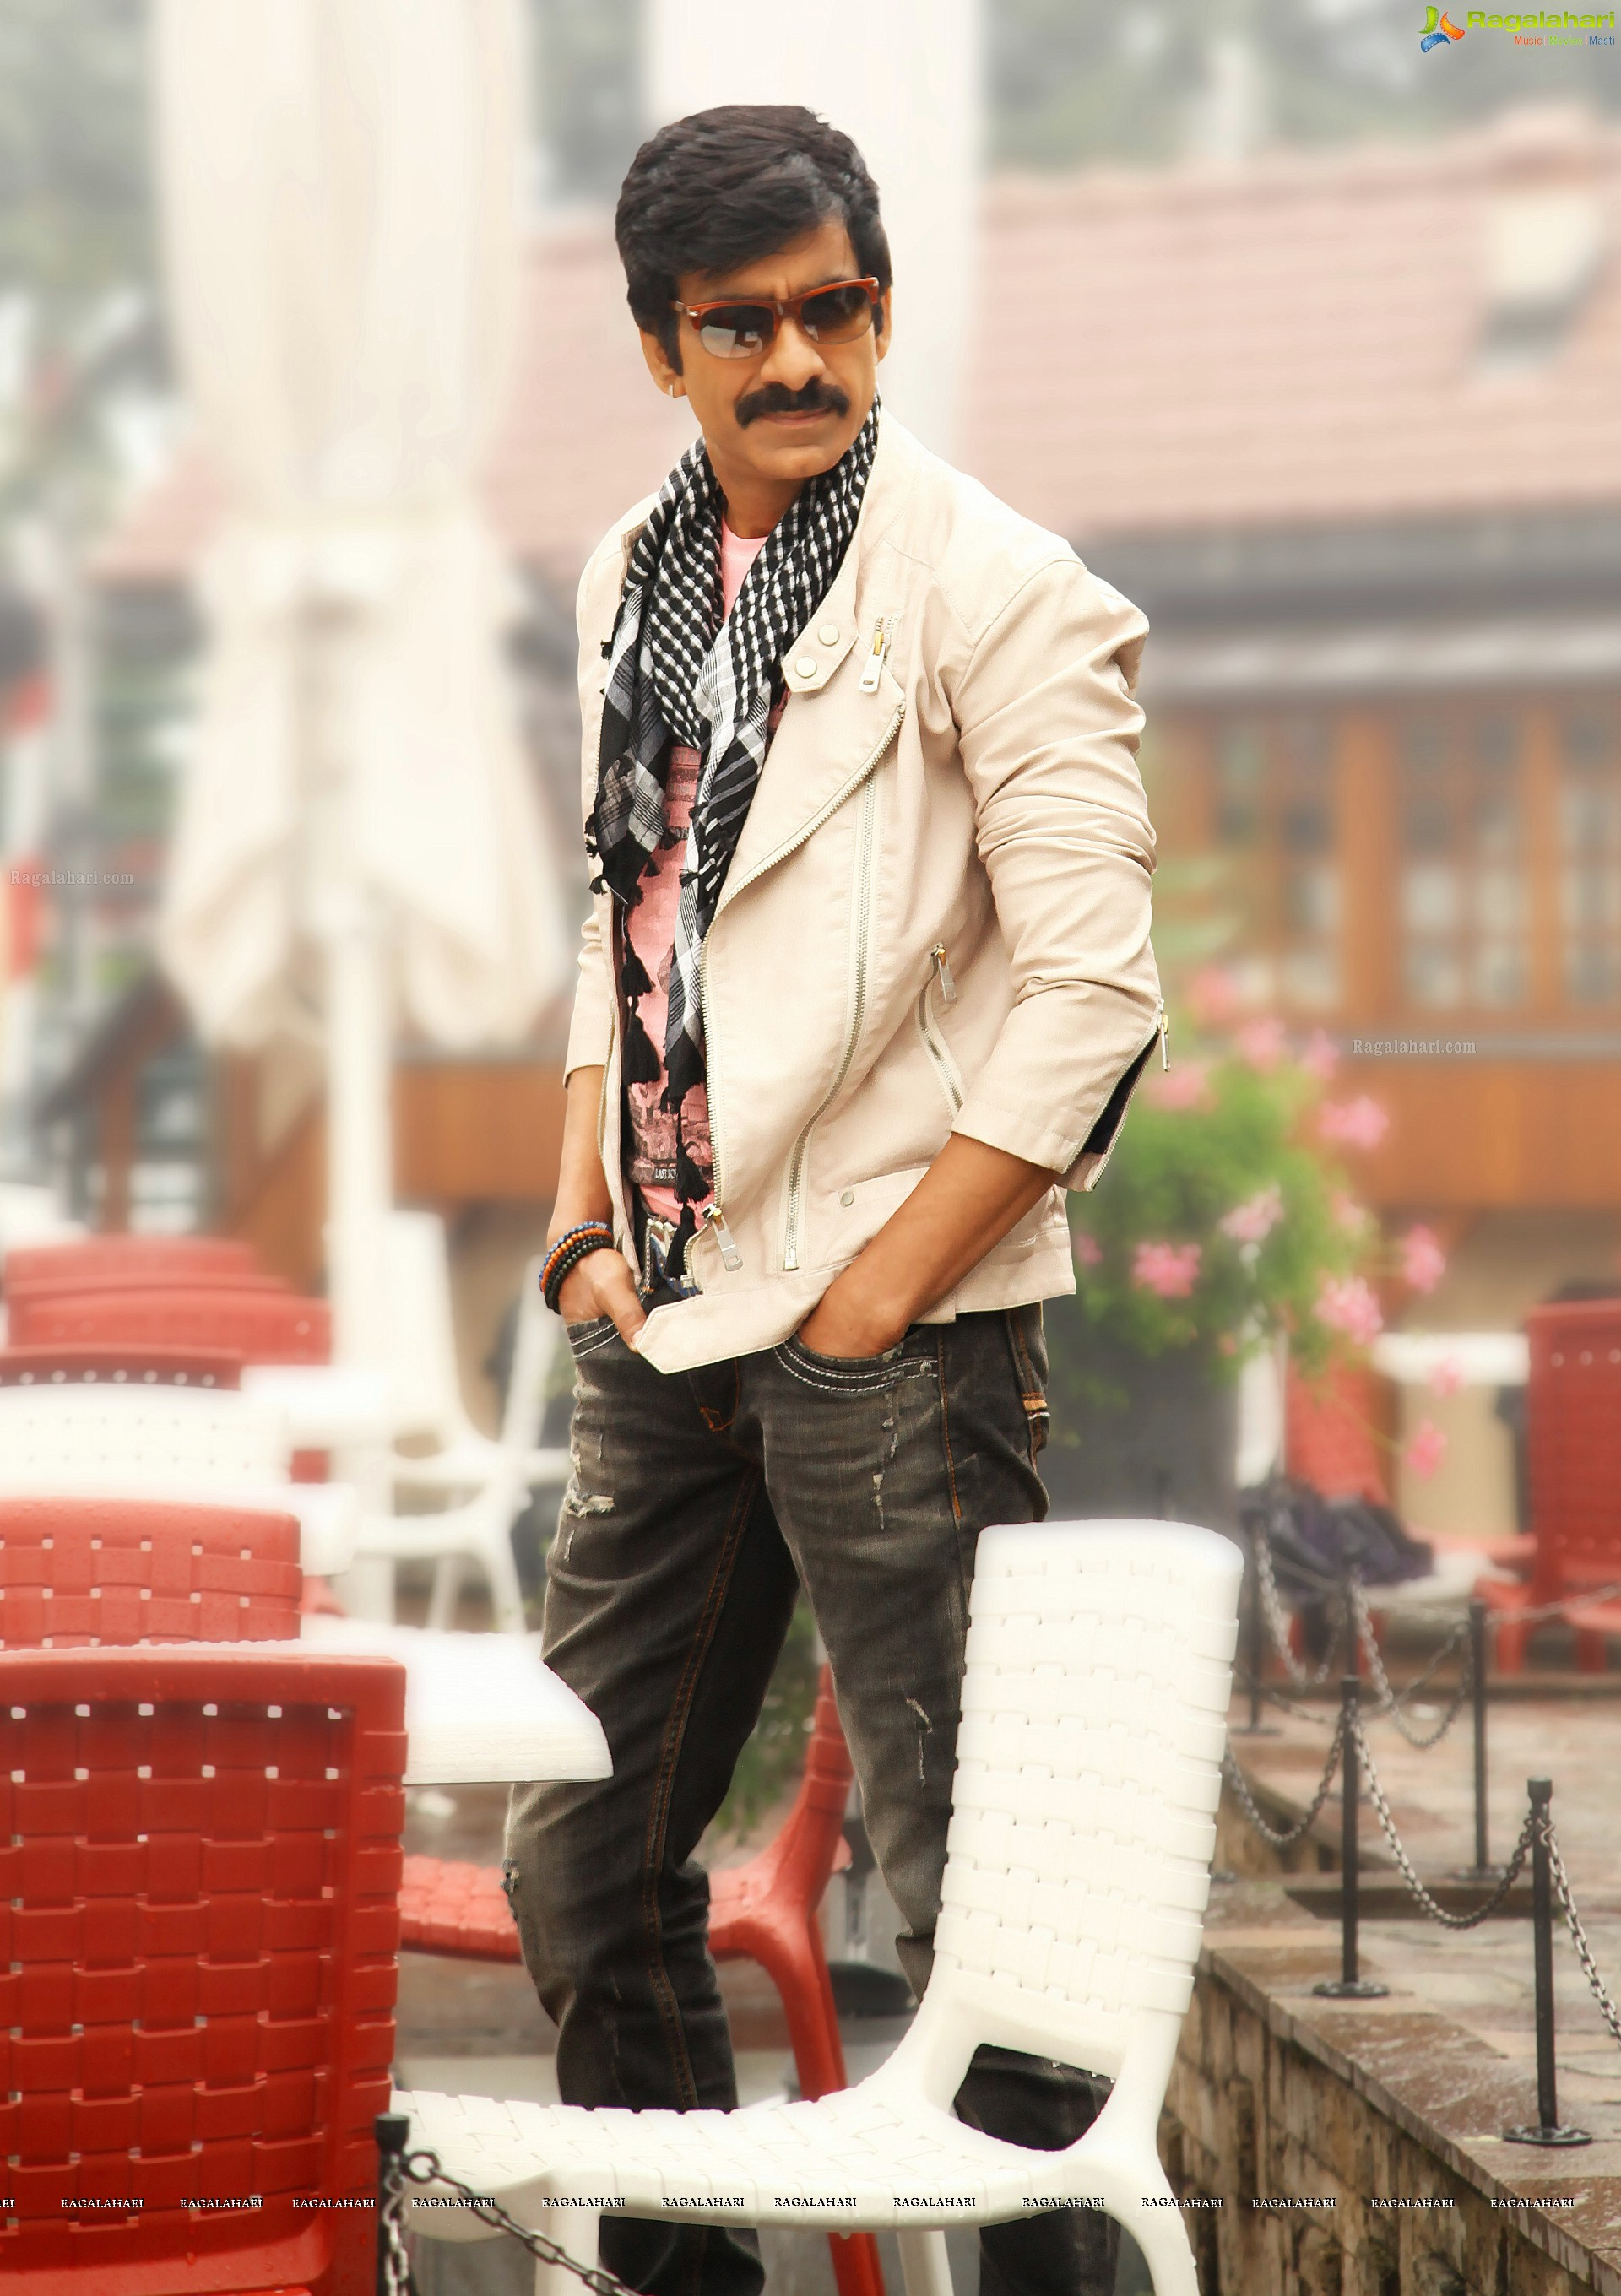 ravi teja (high definition) image 10 | telugu actress gallery,images